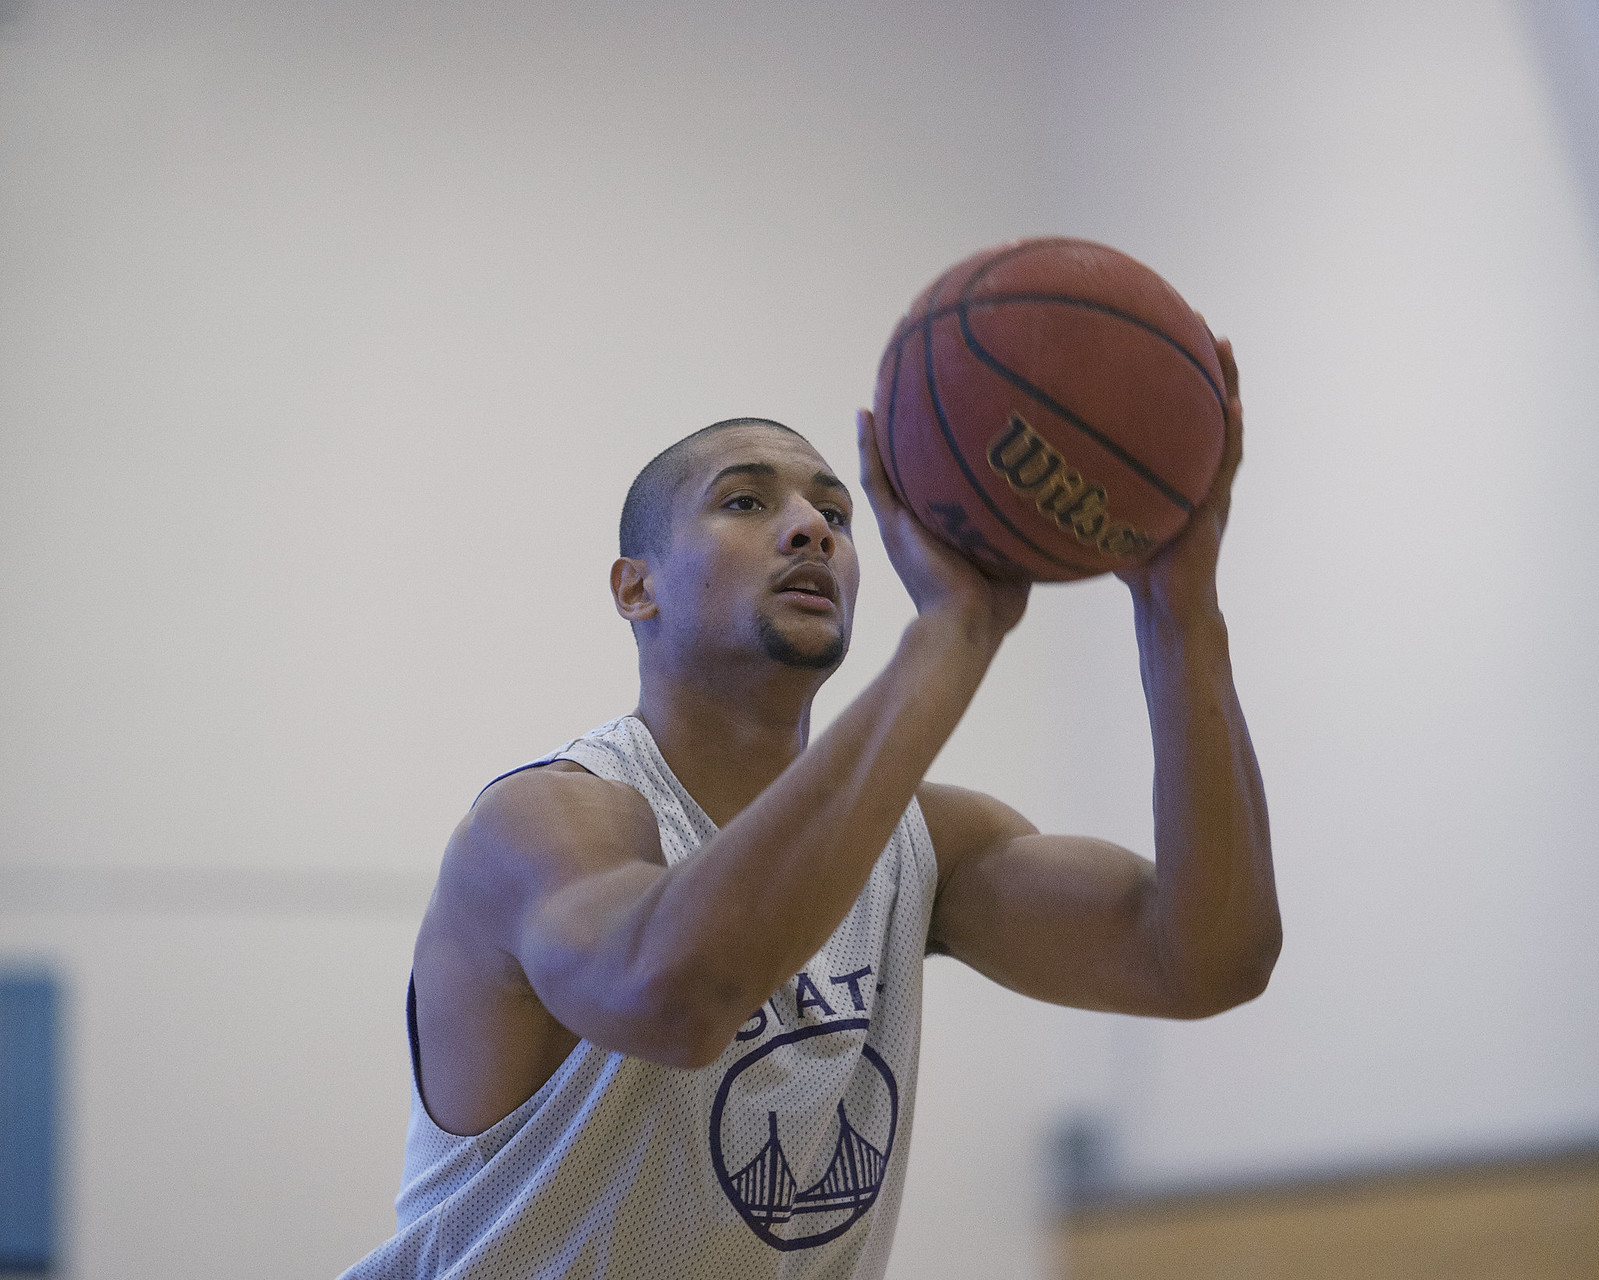 Erik Fearn shoots during practice on Tuesday, Oct. 15, 2013 at SF State. The Gators play their first game on Saturday, Nov. 2 against St. John's University in Queens, NY. Photo by Dariel Medina / Xpress